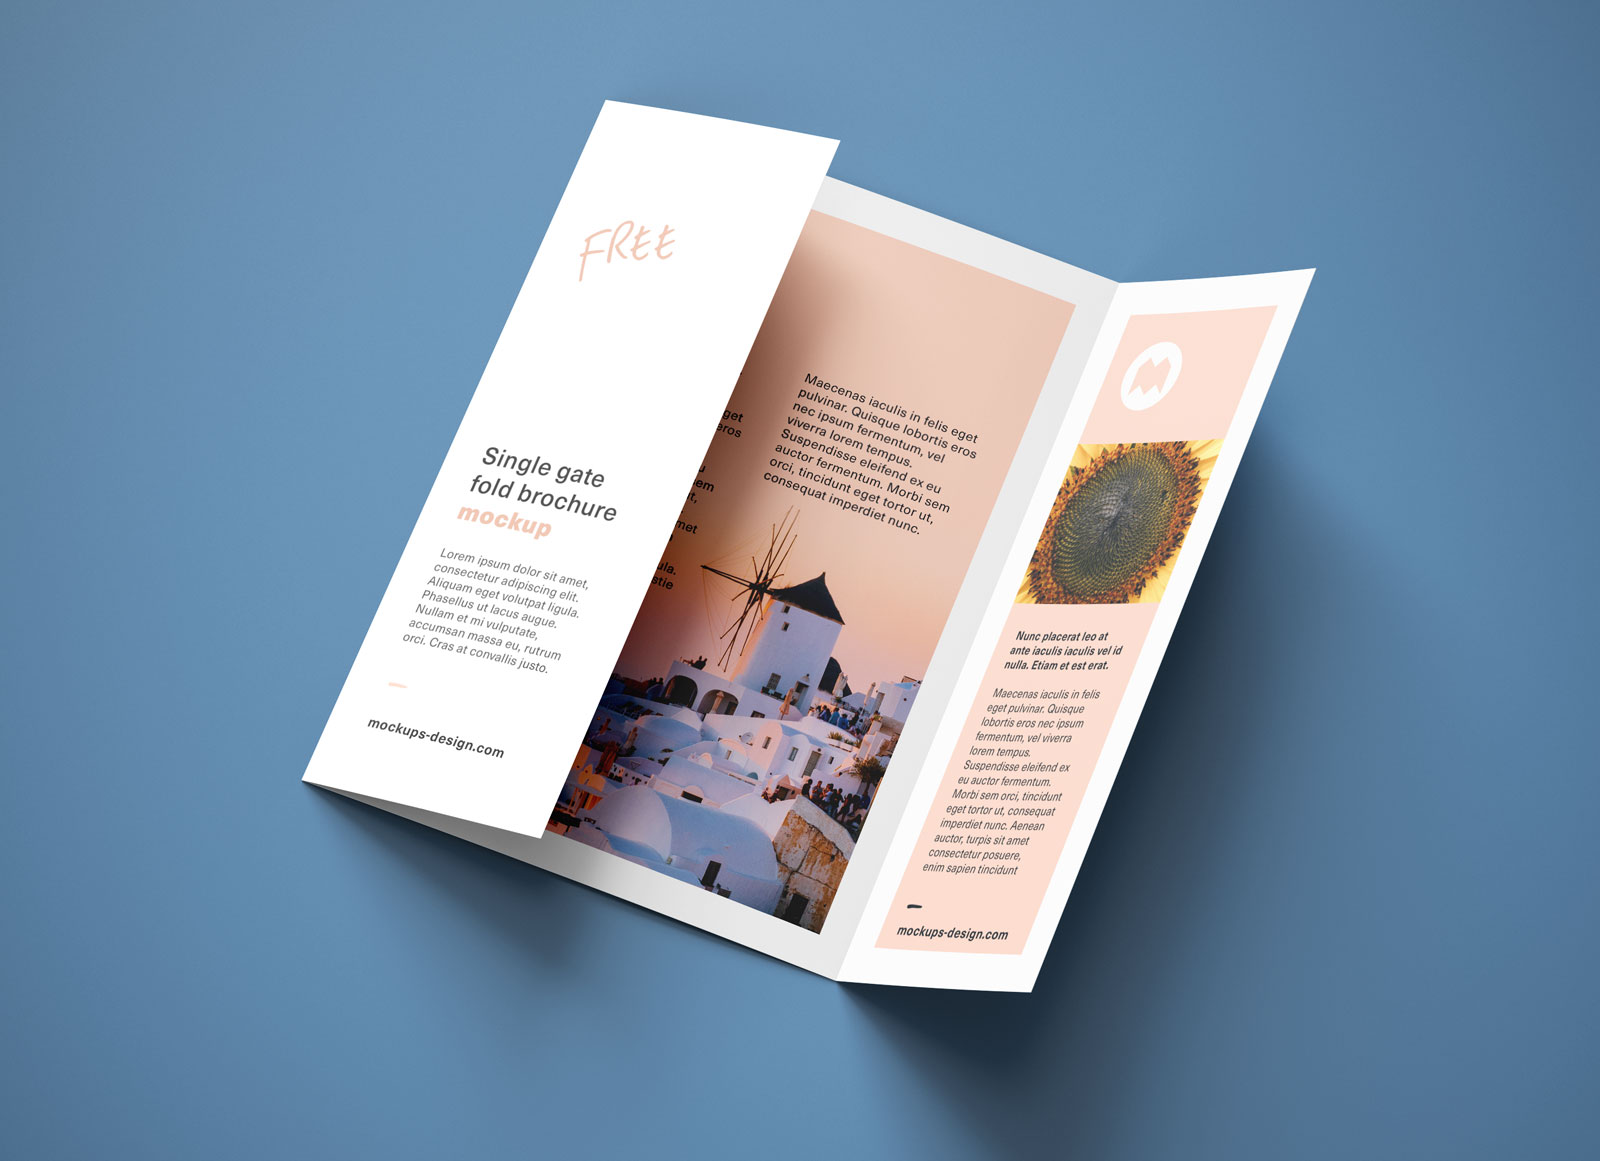 Free-Single-Gate-Fold-Brochure-Mockup-PSD-Set-2